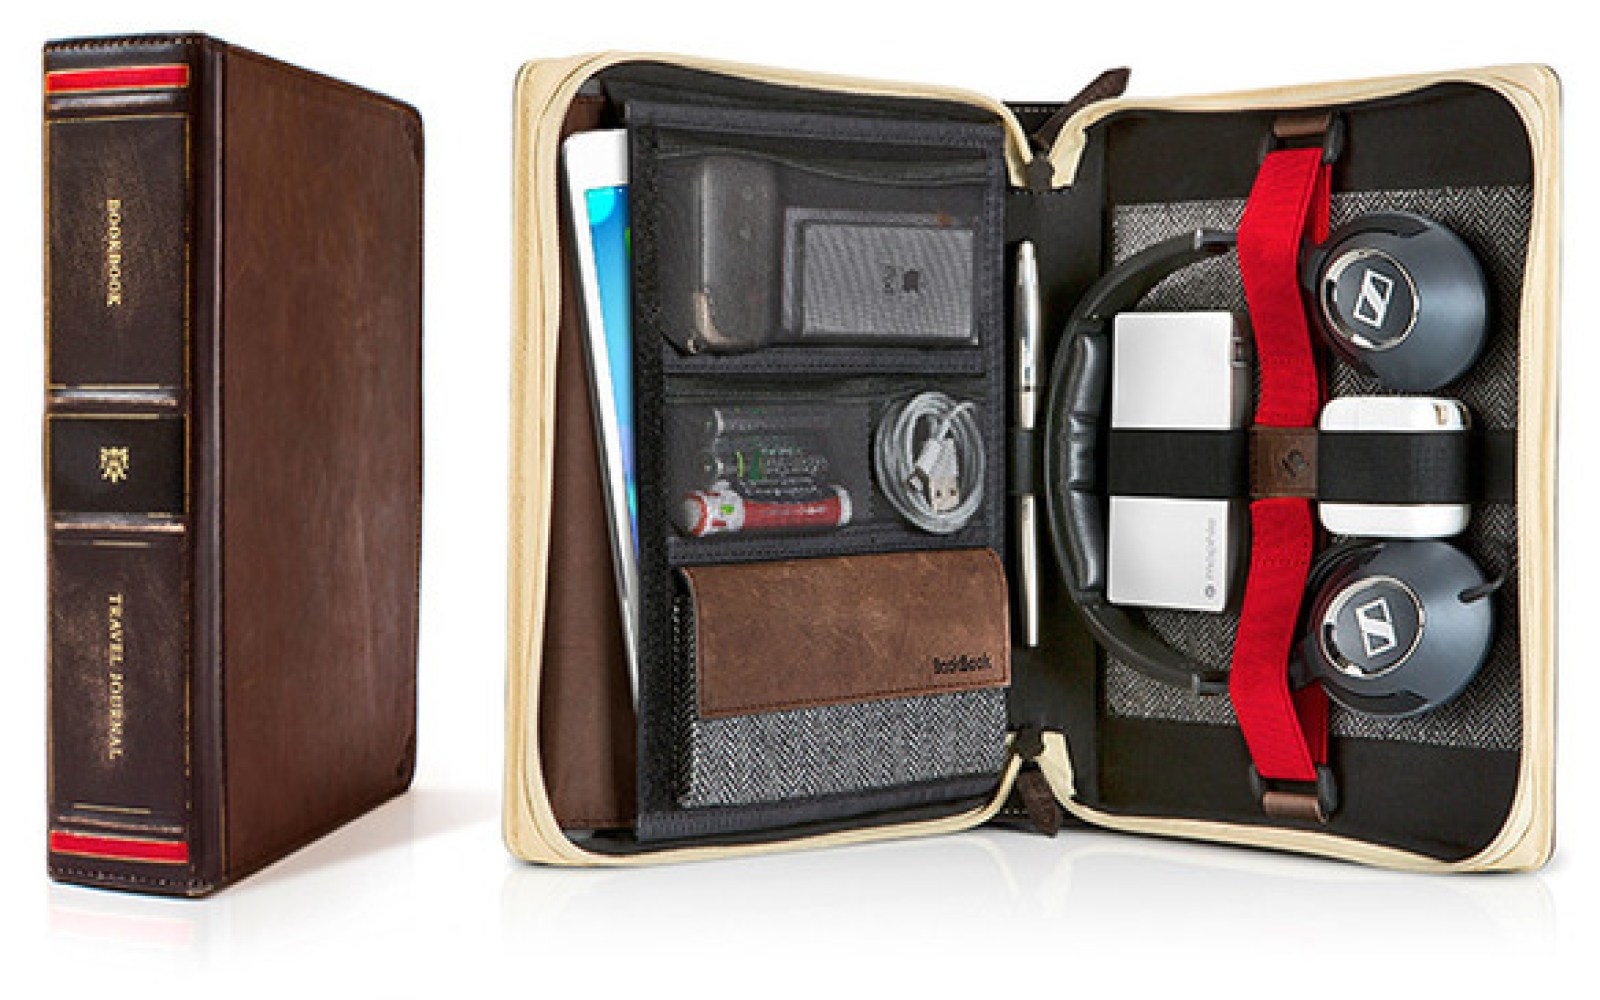 Twelve South's BookBook Travel Journal: a beautiful rich, leather case for your iPad, new or old